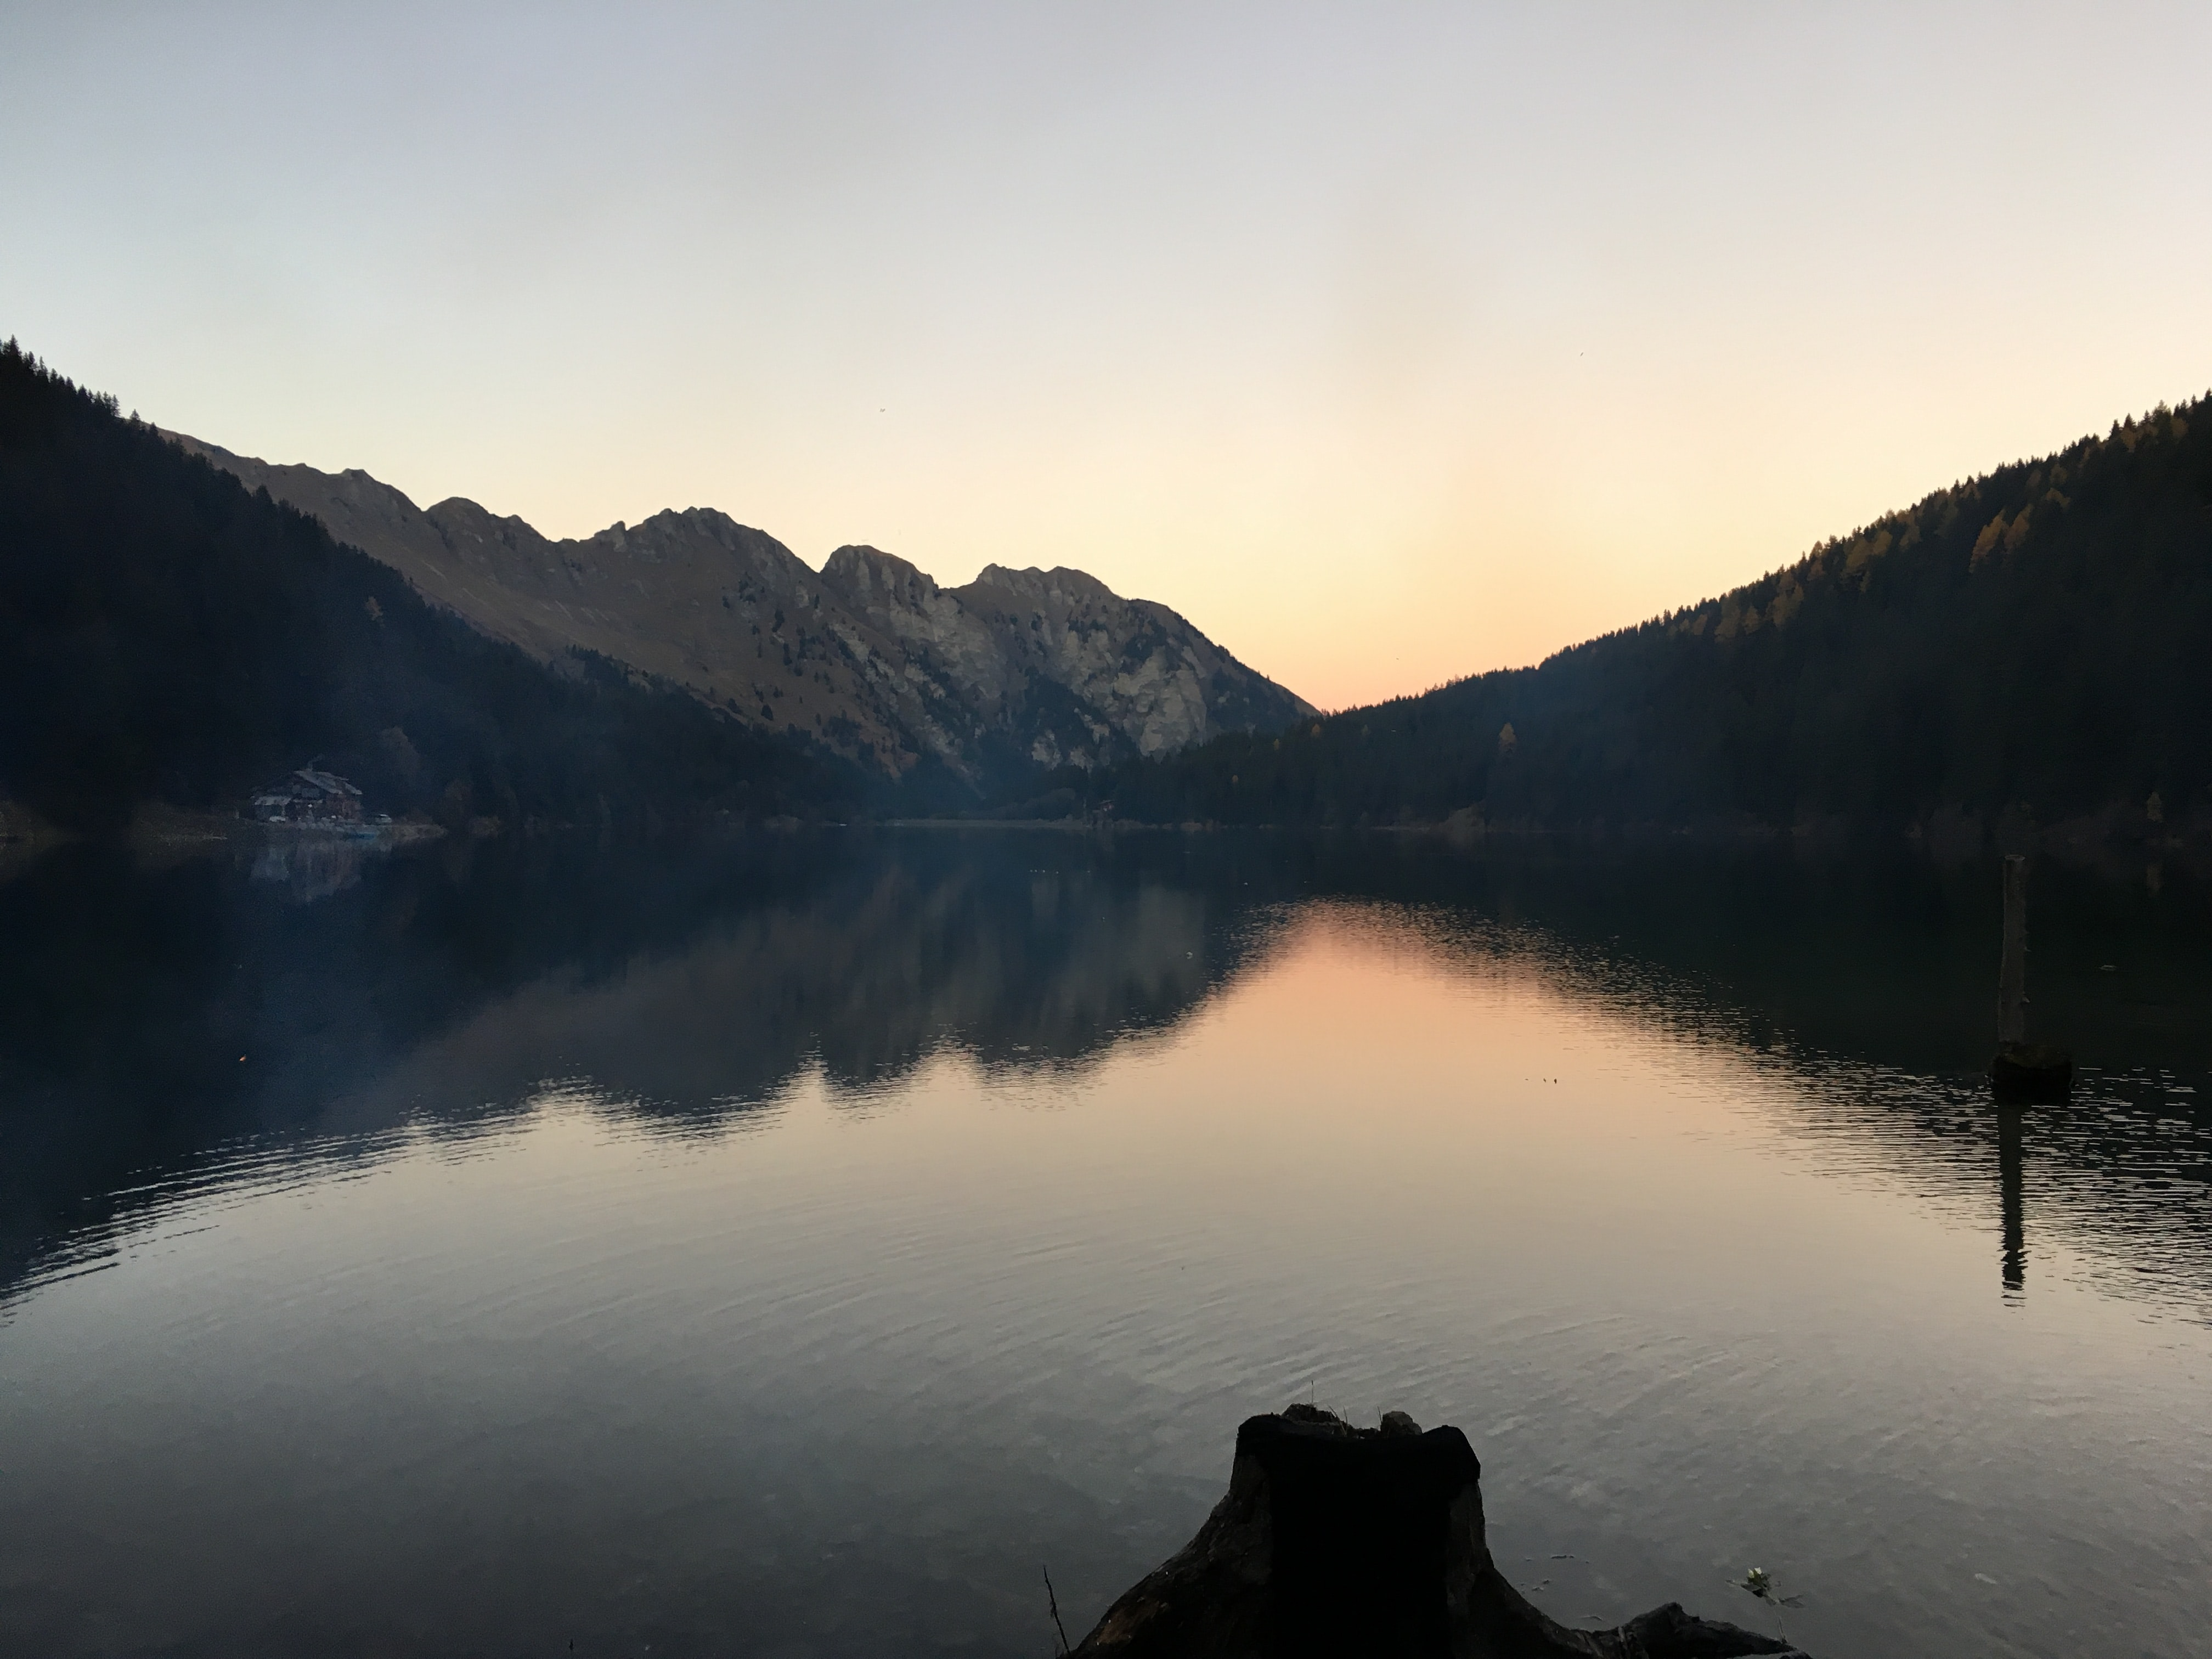 Mountains and woods around Lake Arnensee in the evening